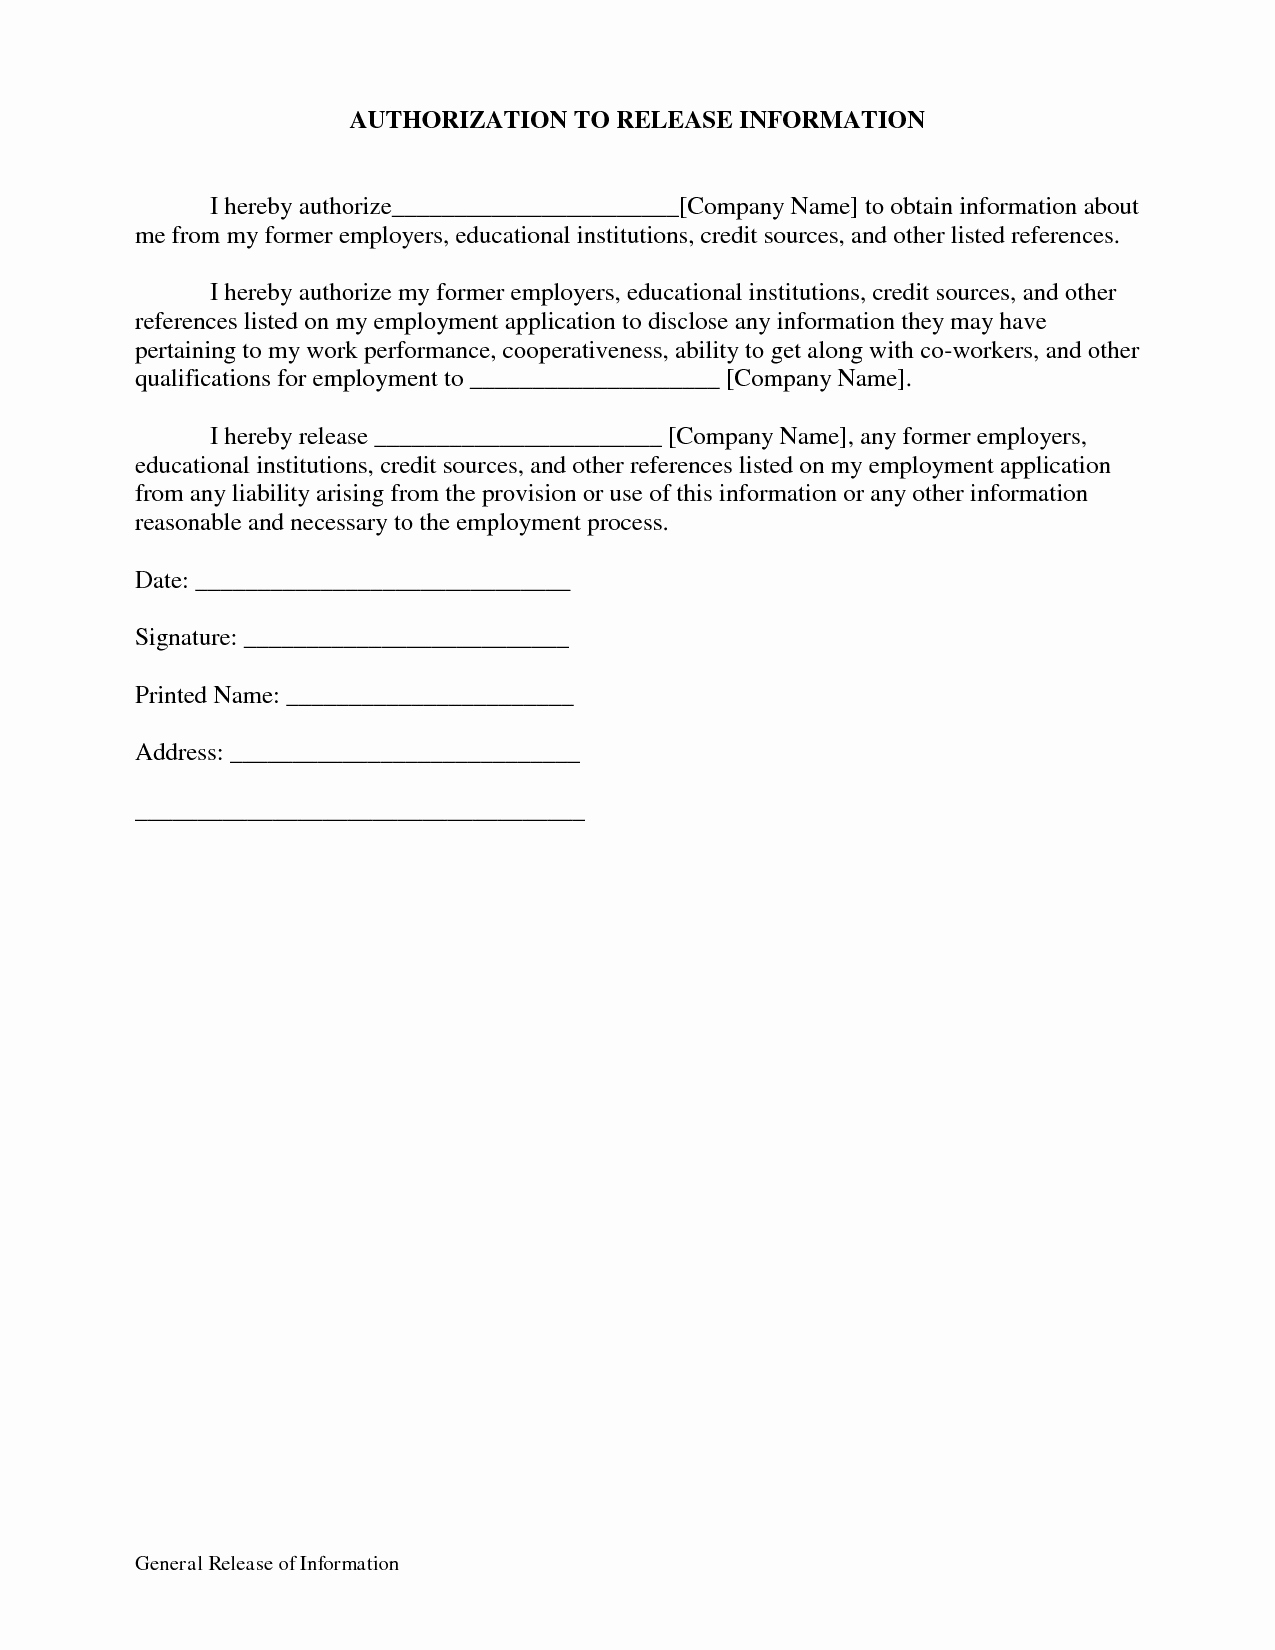 General Release form Template Best Of General Release Information form